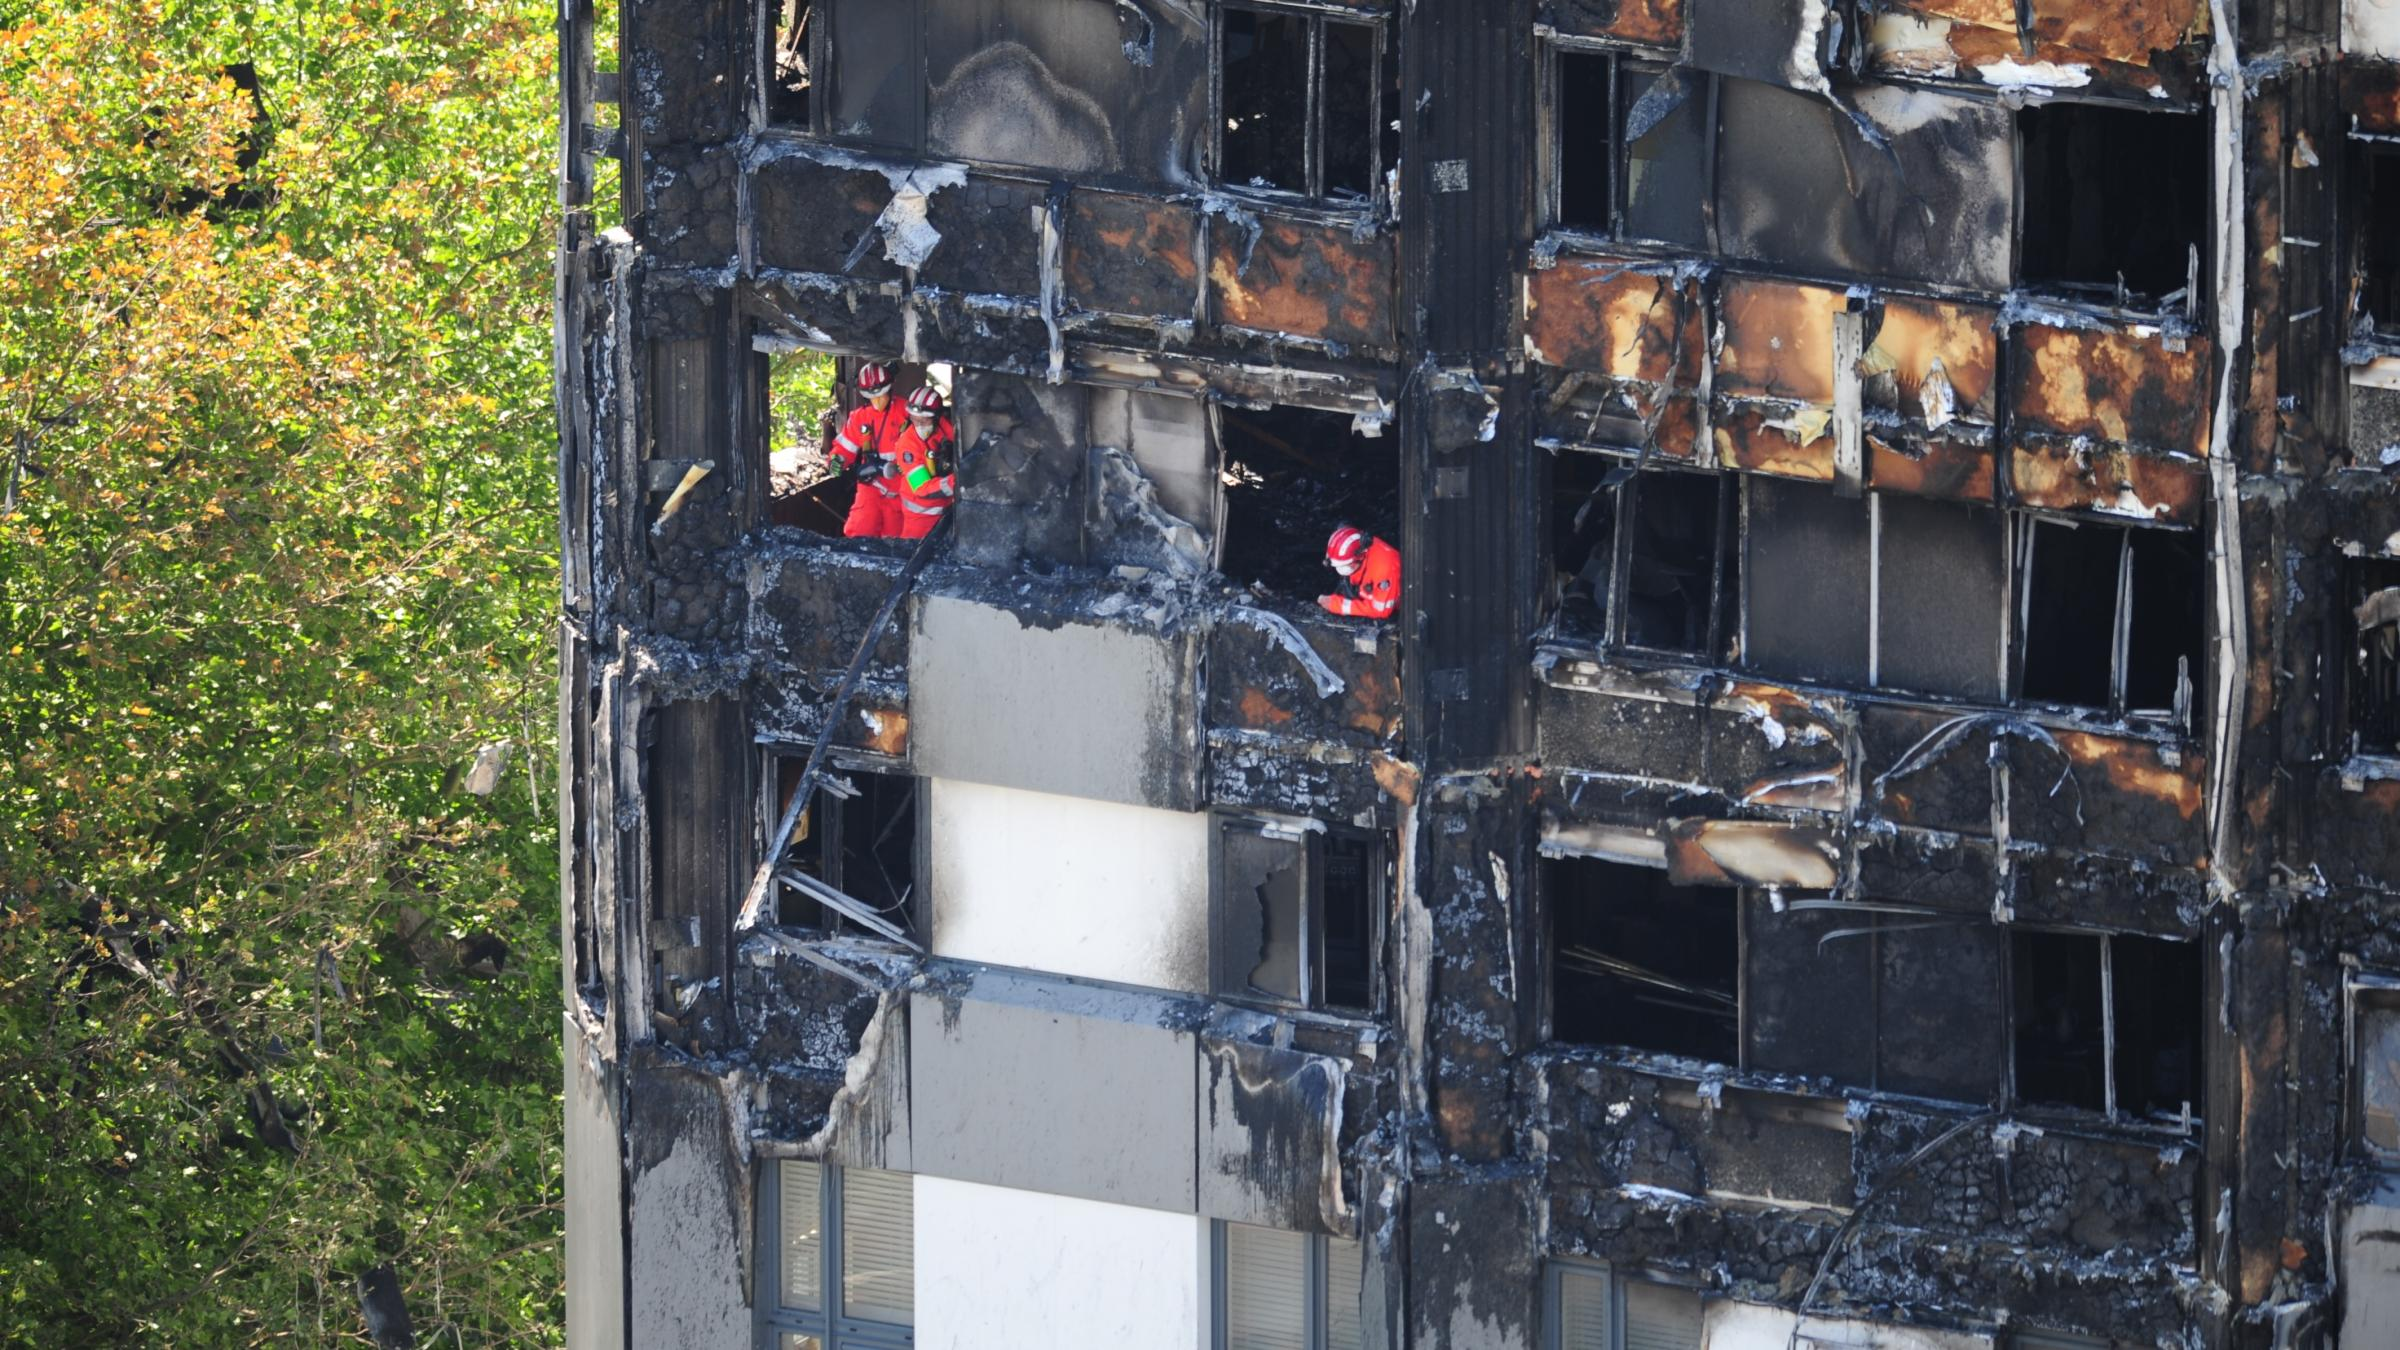 People Are Believed Dead In London's Grenfell Tower Apartment Fire